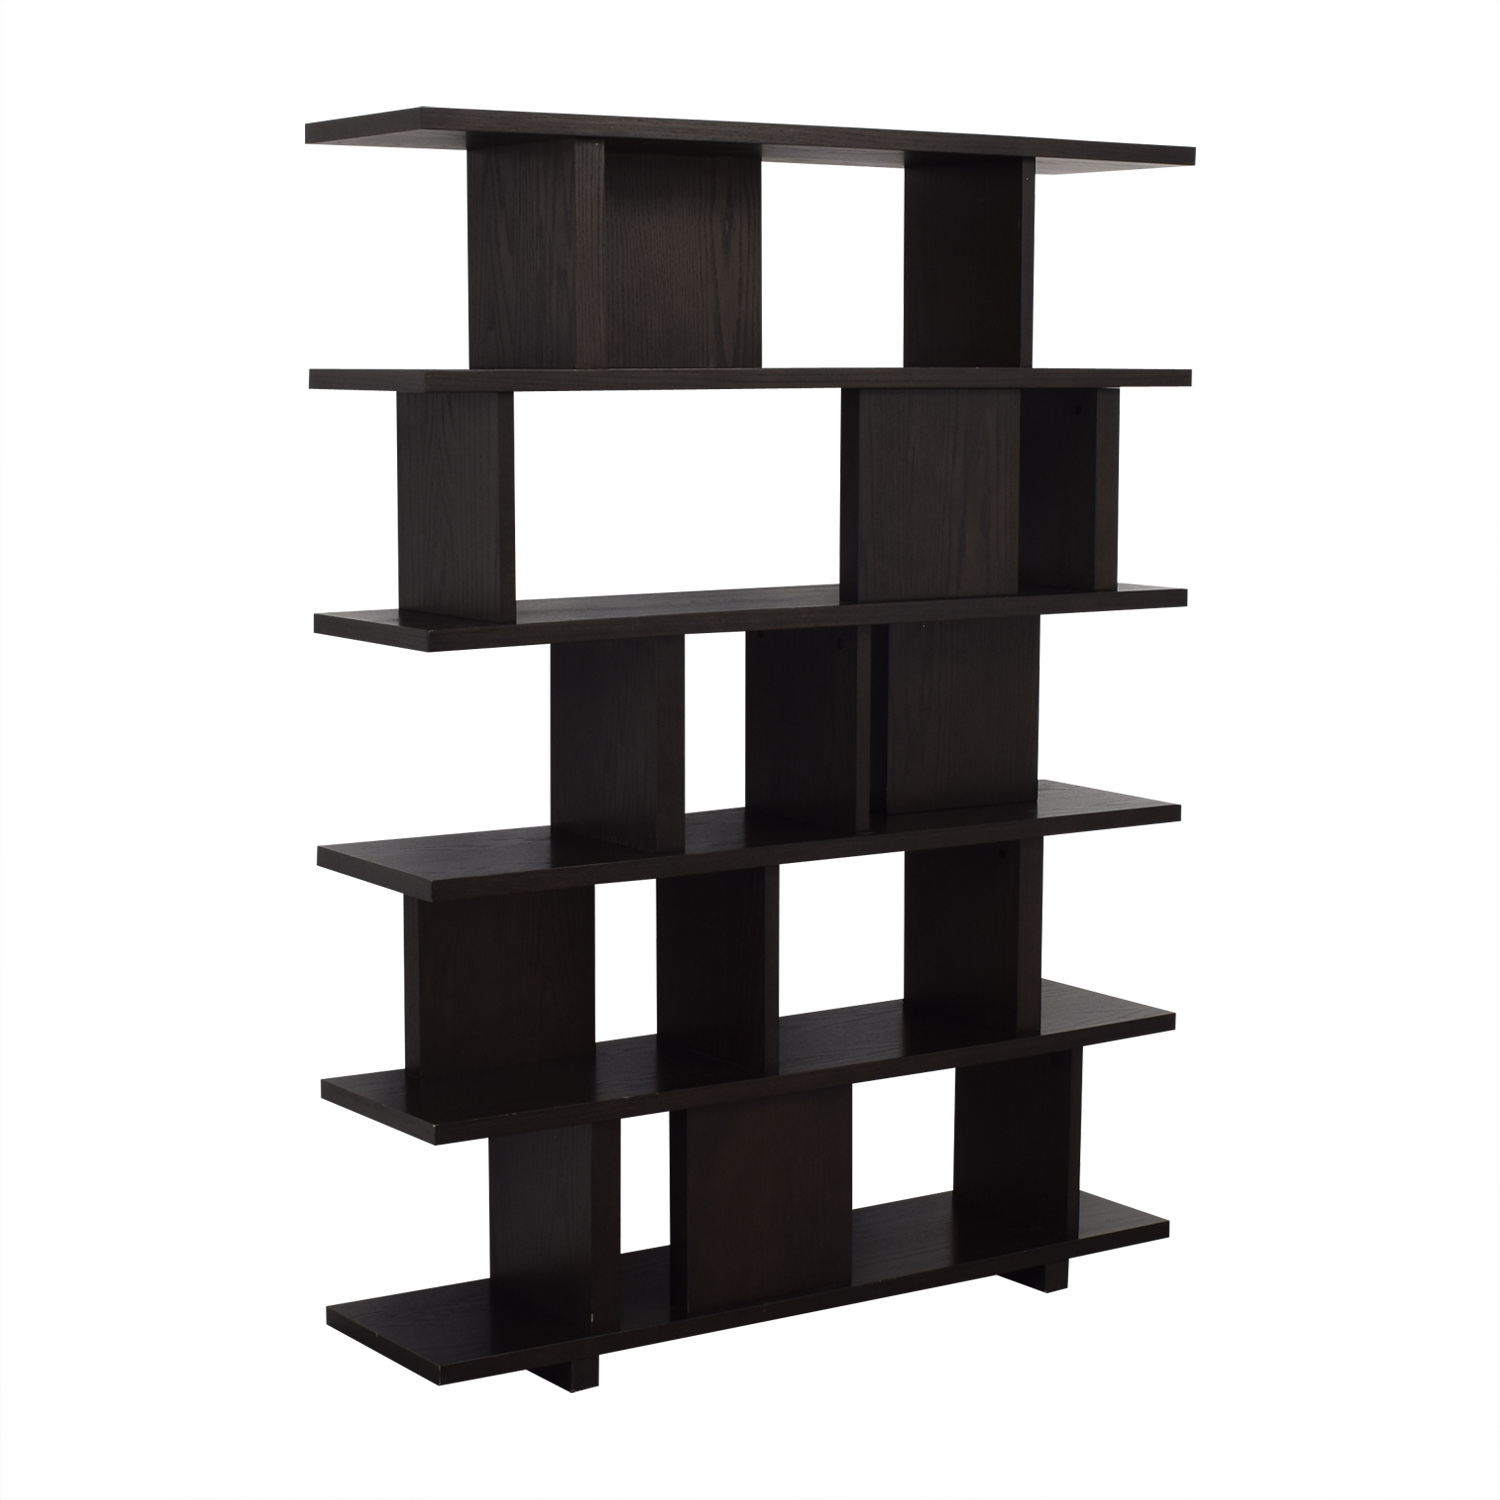 Modern Room Divider Bookshelf / Storage